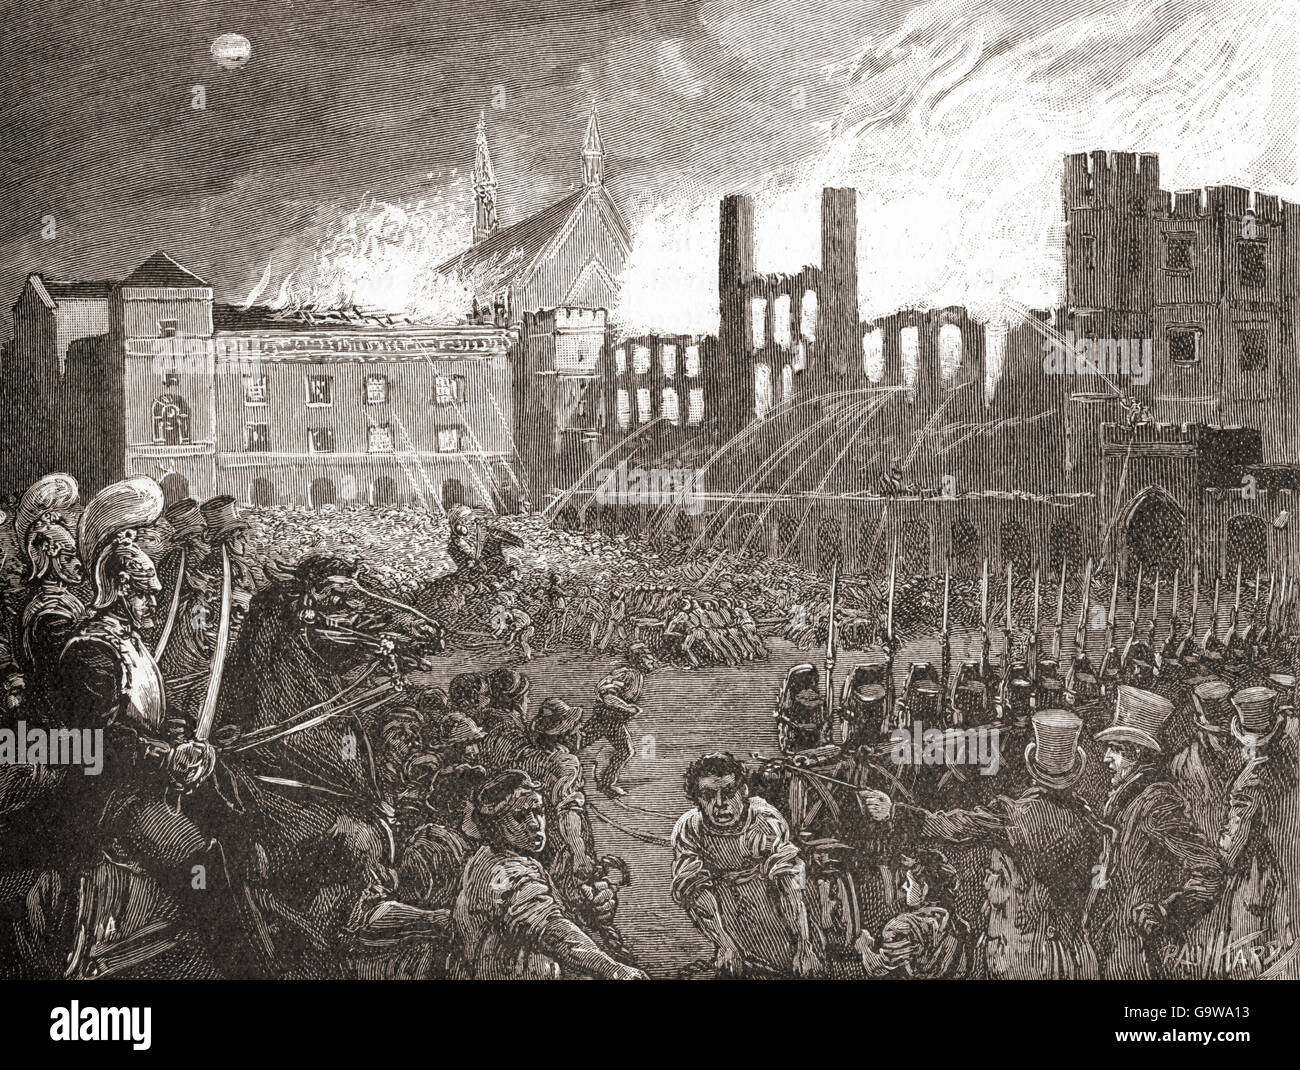 The British Houses of Parliament, London, England destroyed by fire on 16 October 1834. - Stock Image